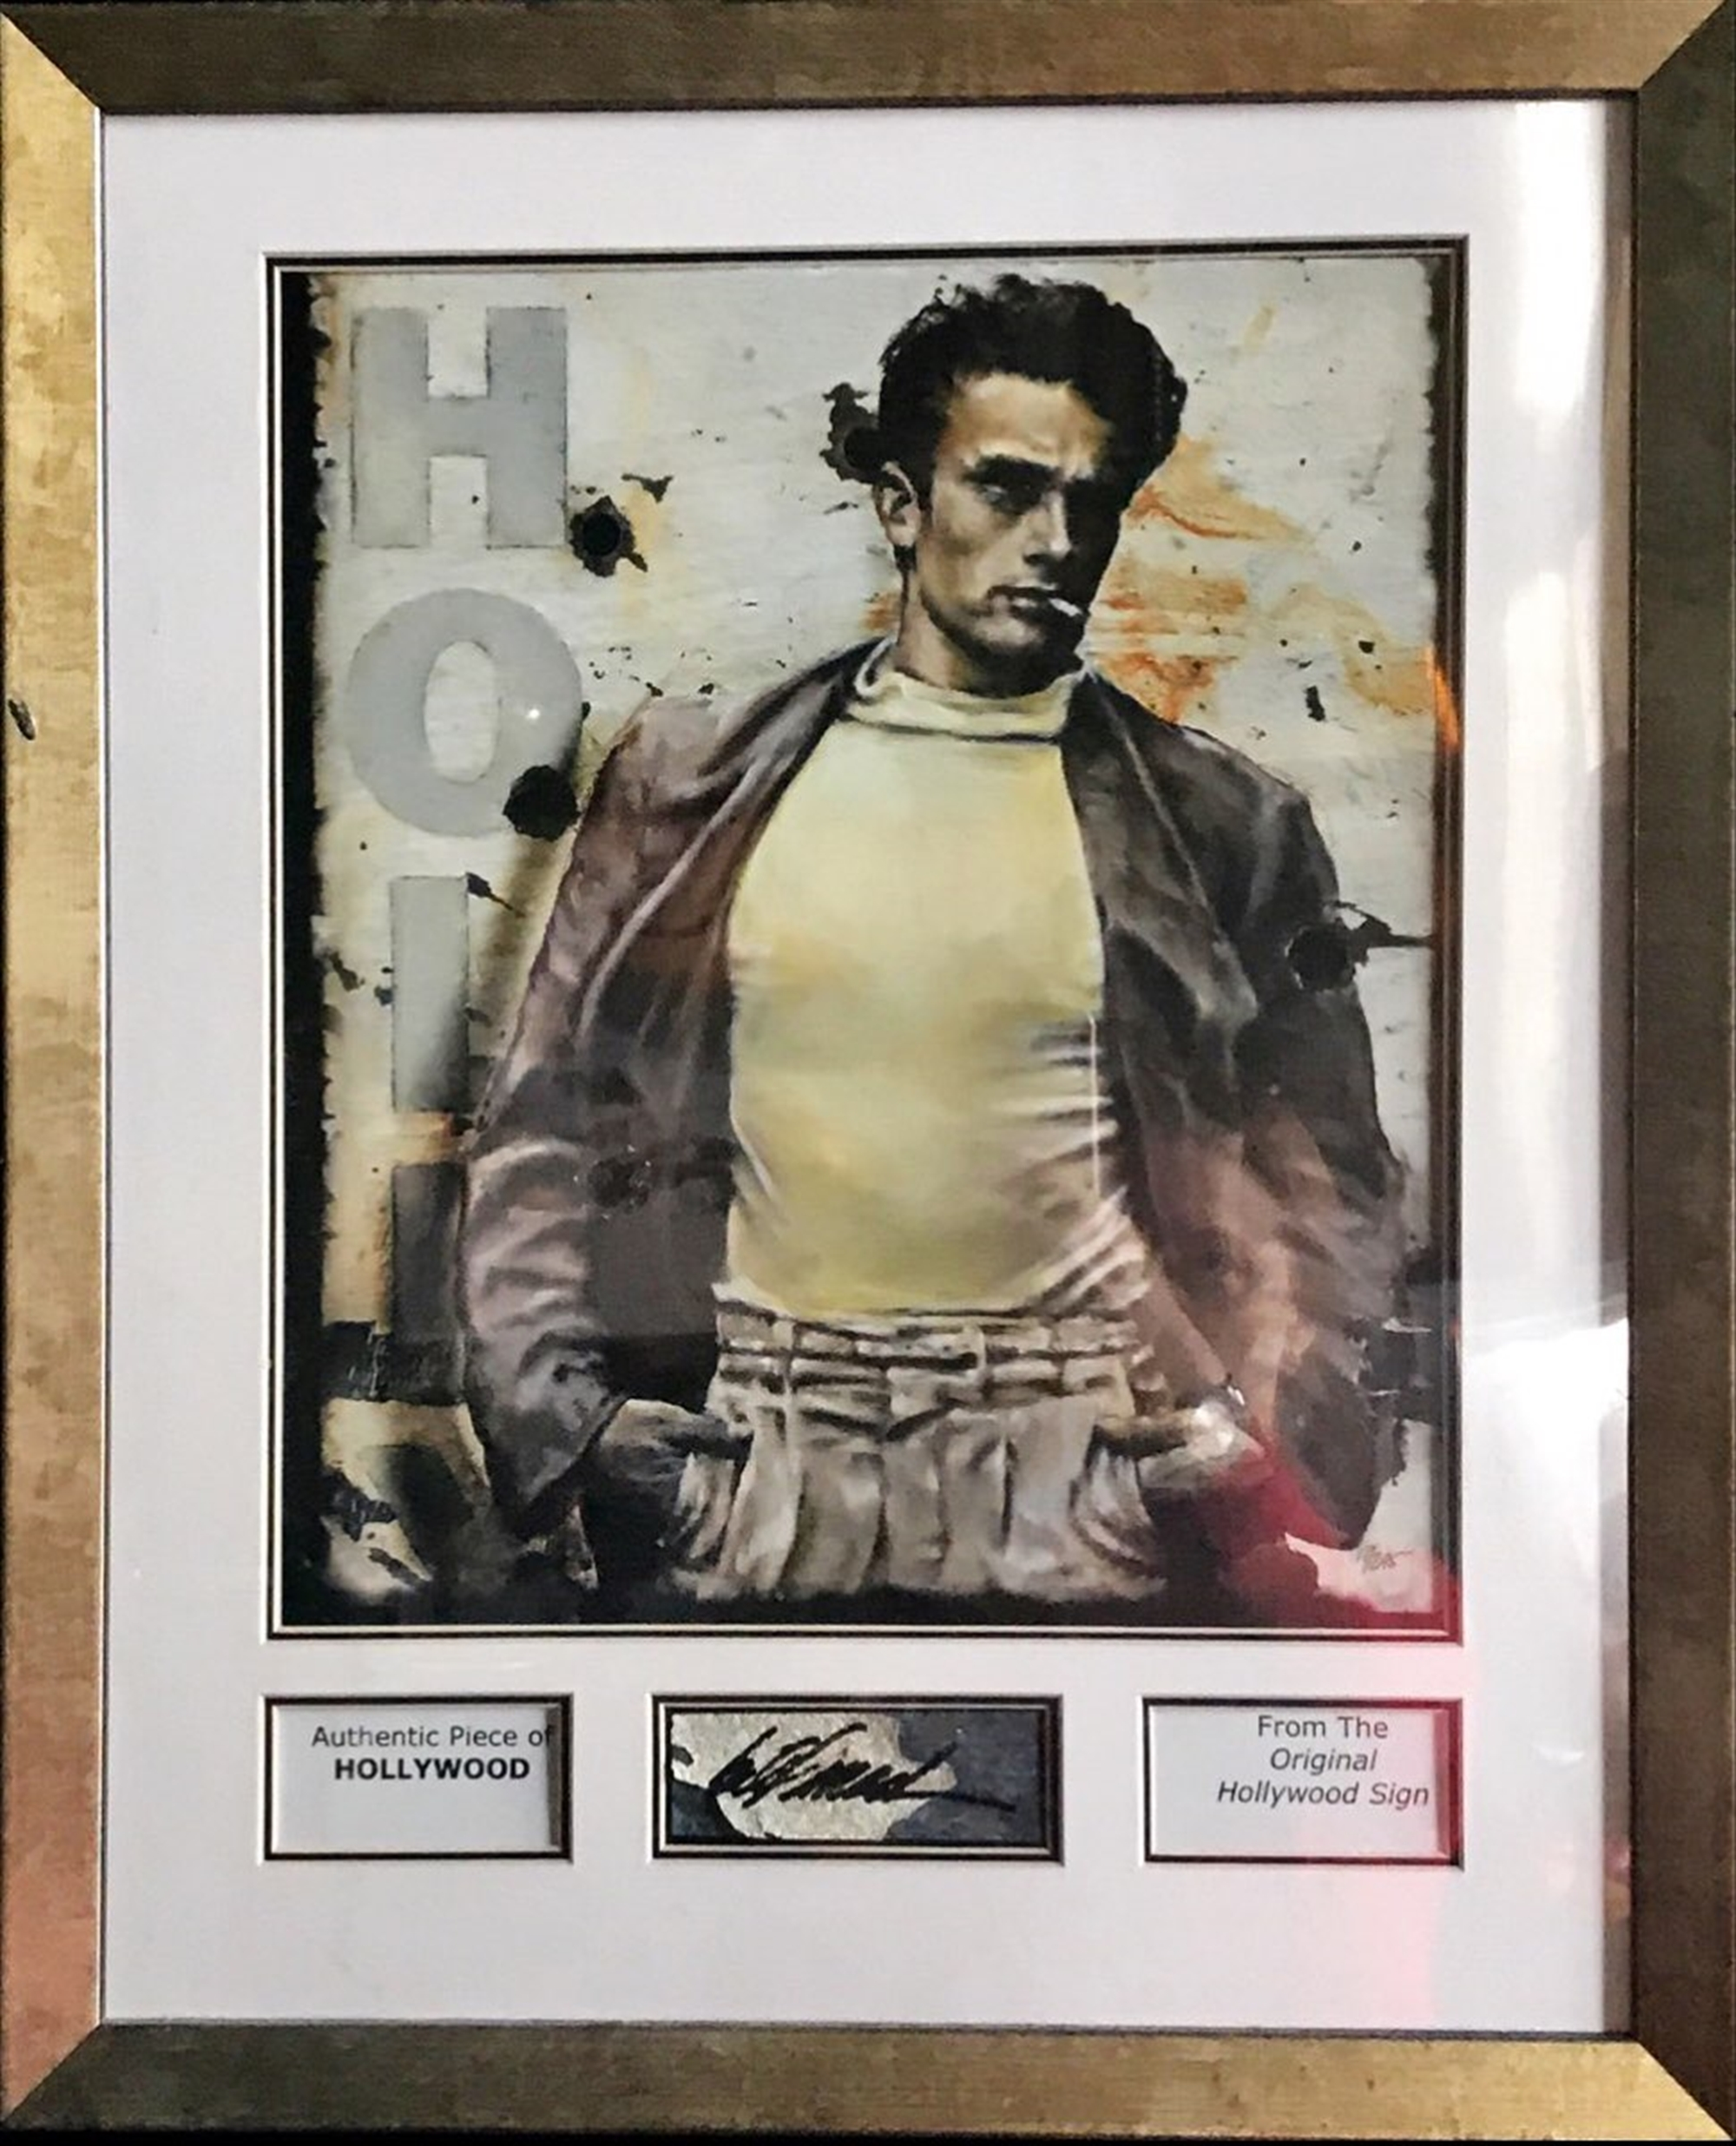 James Dean Hollywood Sign Name Plate by Bill Mack